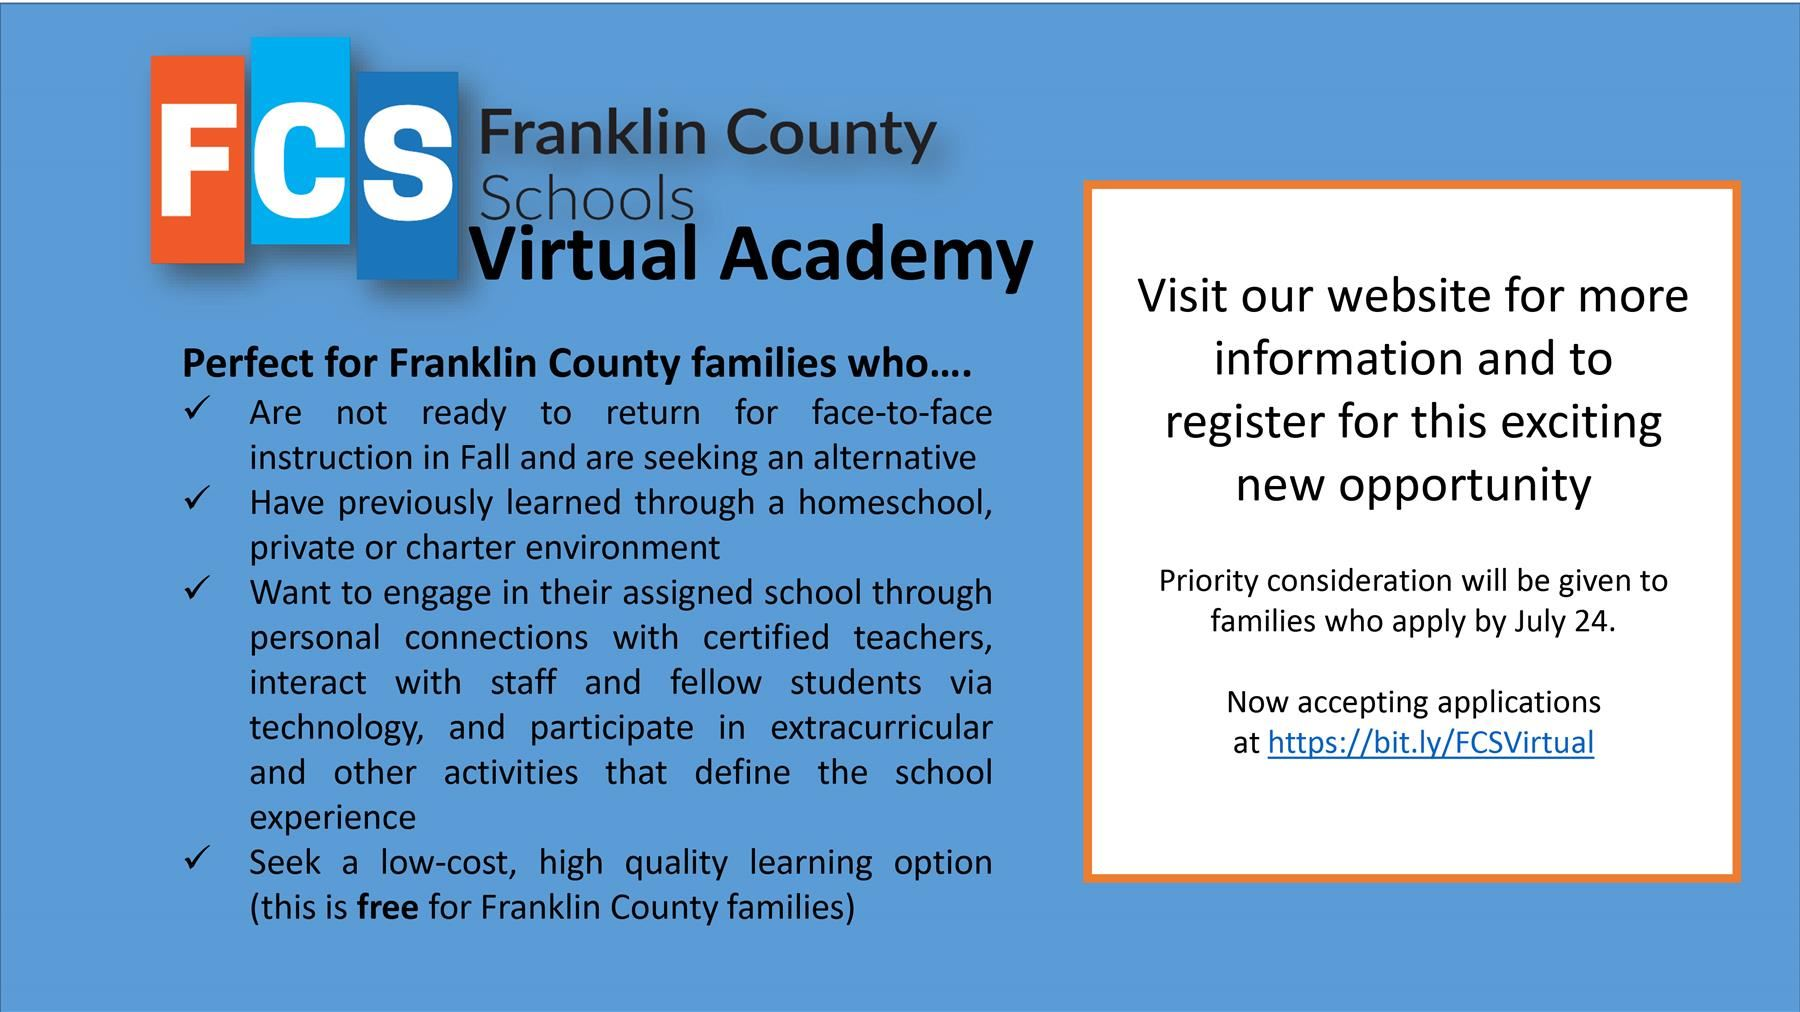 FCS Virtual Academy Application & FAQs